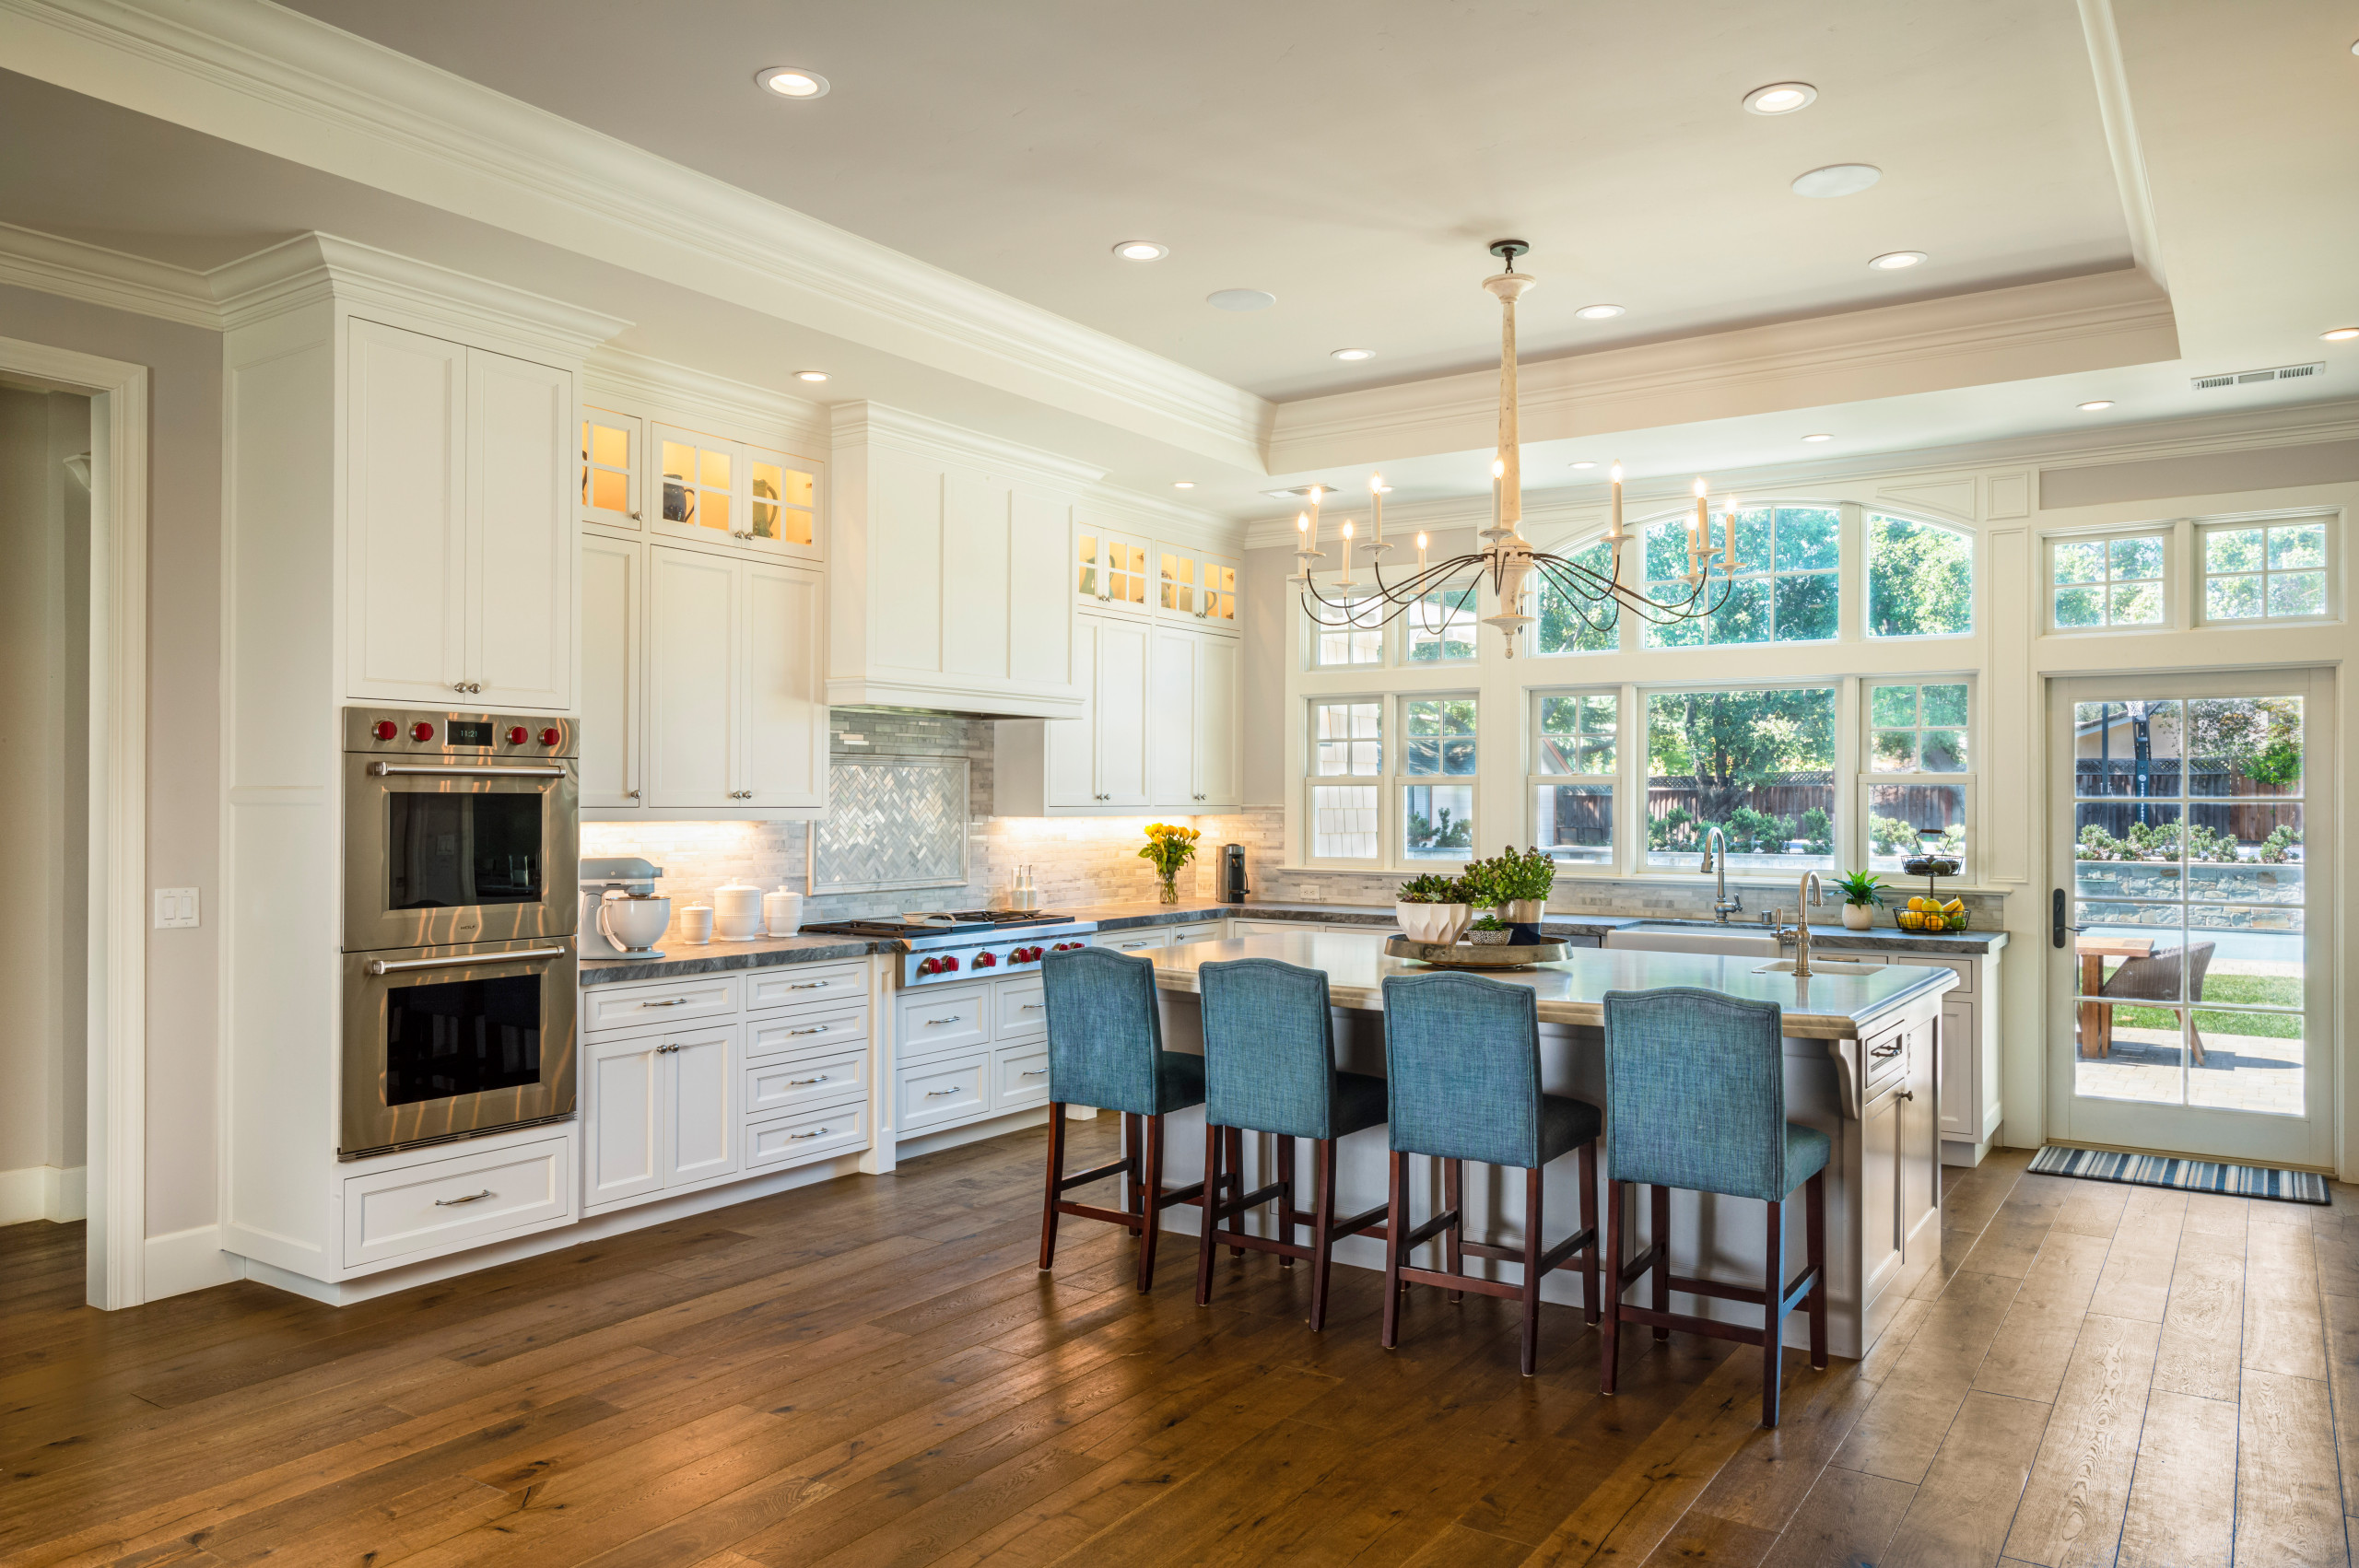 Inspiration for a transitional kitchen remodel in San Francisco